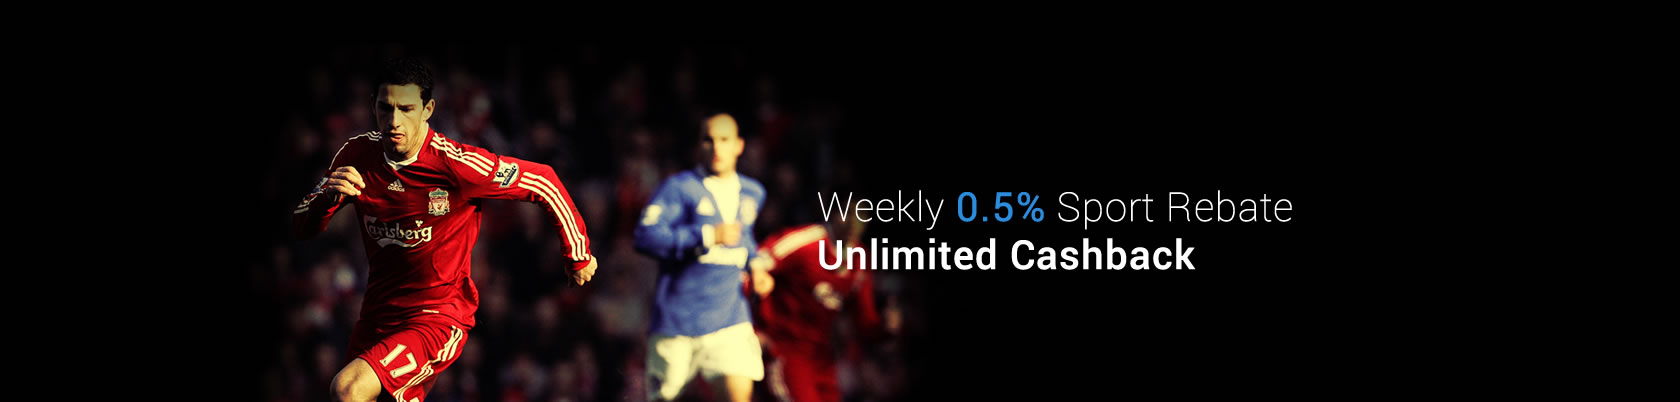 [Galaxy Malaysia] Weekly 0.5% Sport Rebate Unlimited Cashback